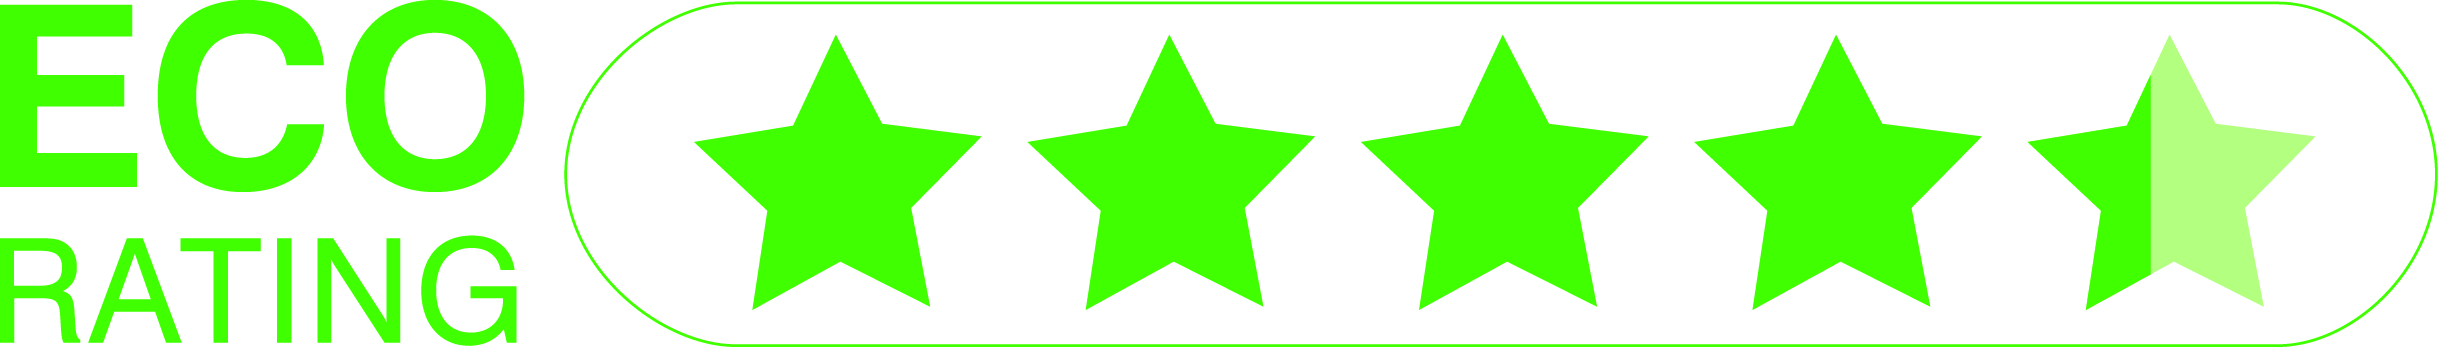 ECO RATING logo (2)